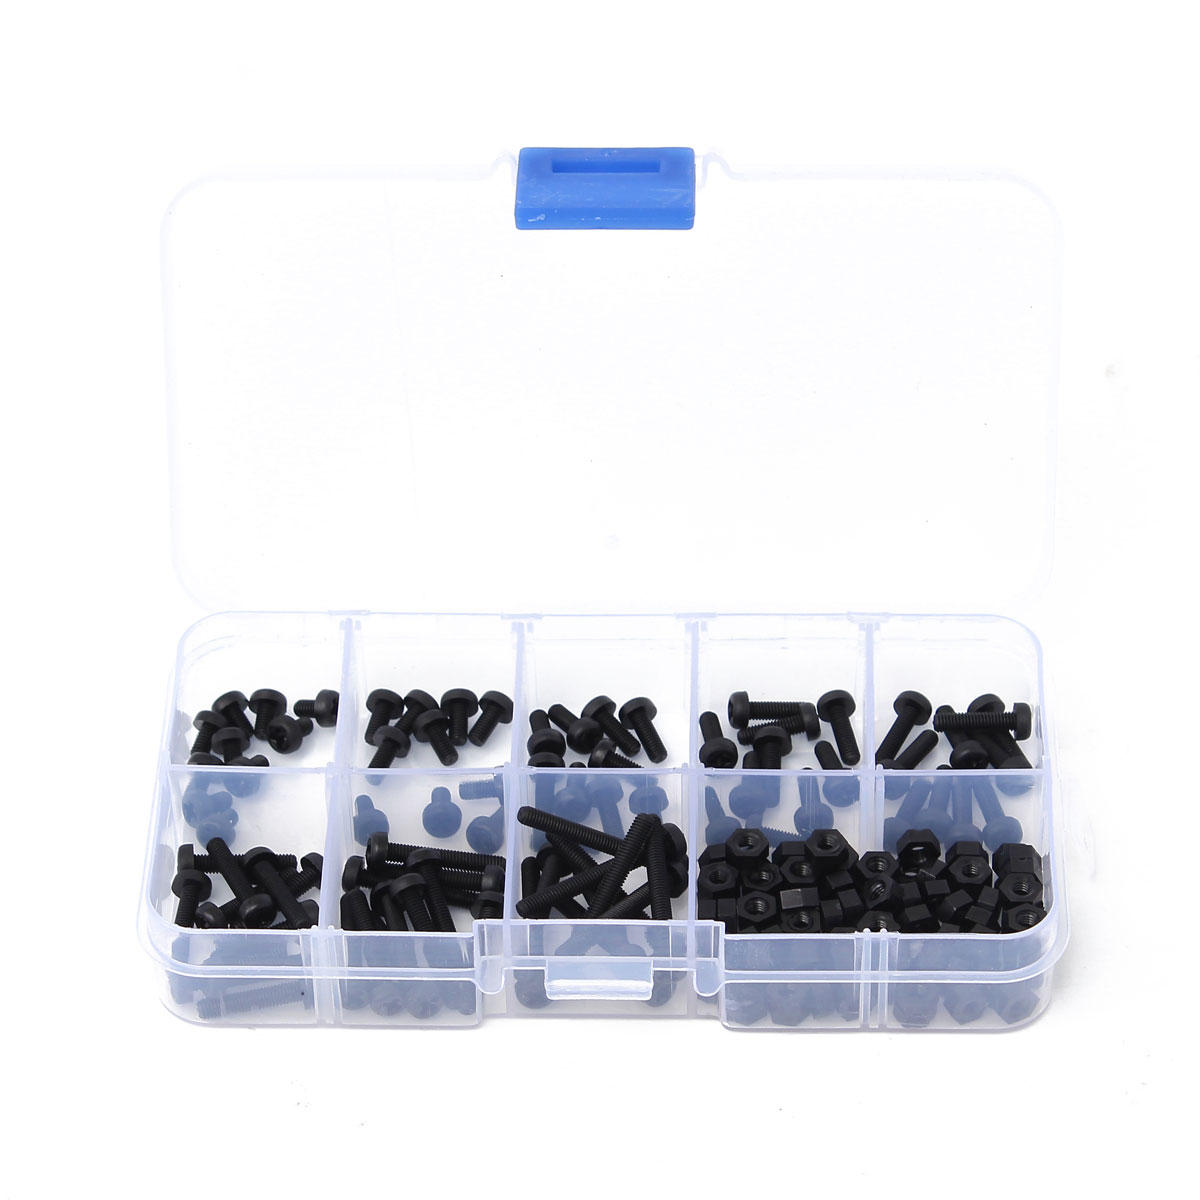 160Pcs Metric M3 Black Nylon Phillips Pan Head Screw Nut Assortment Set